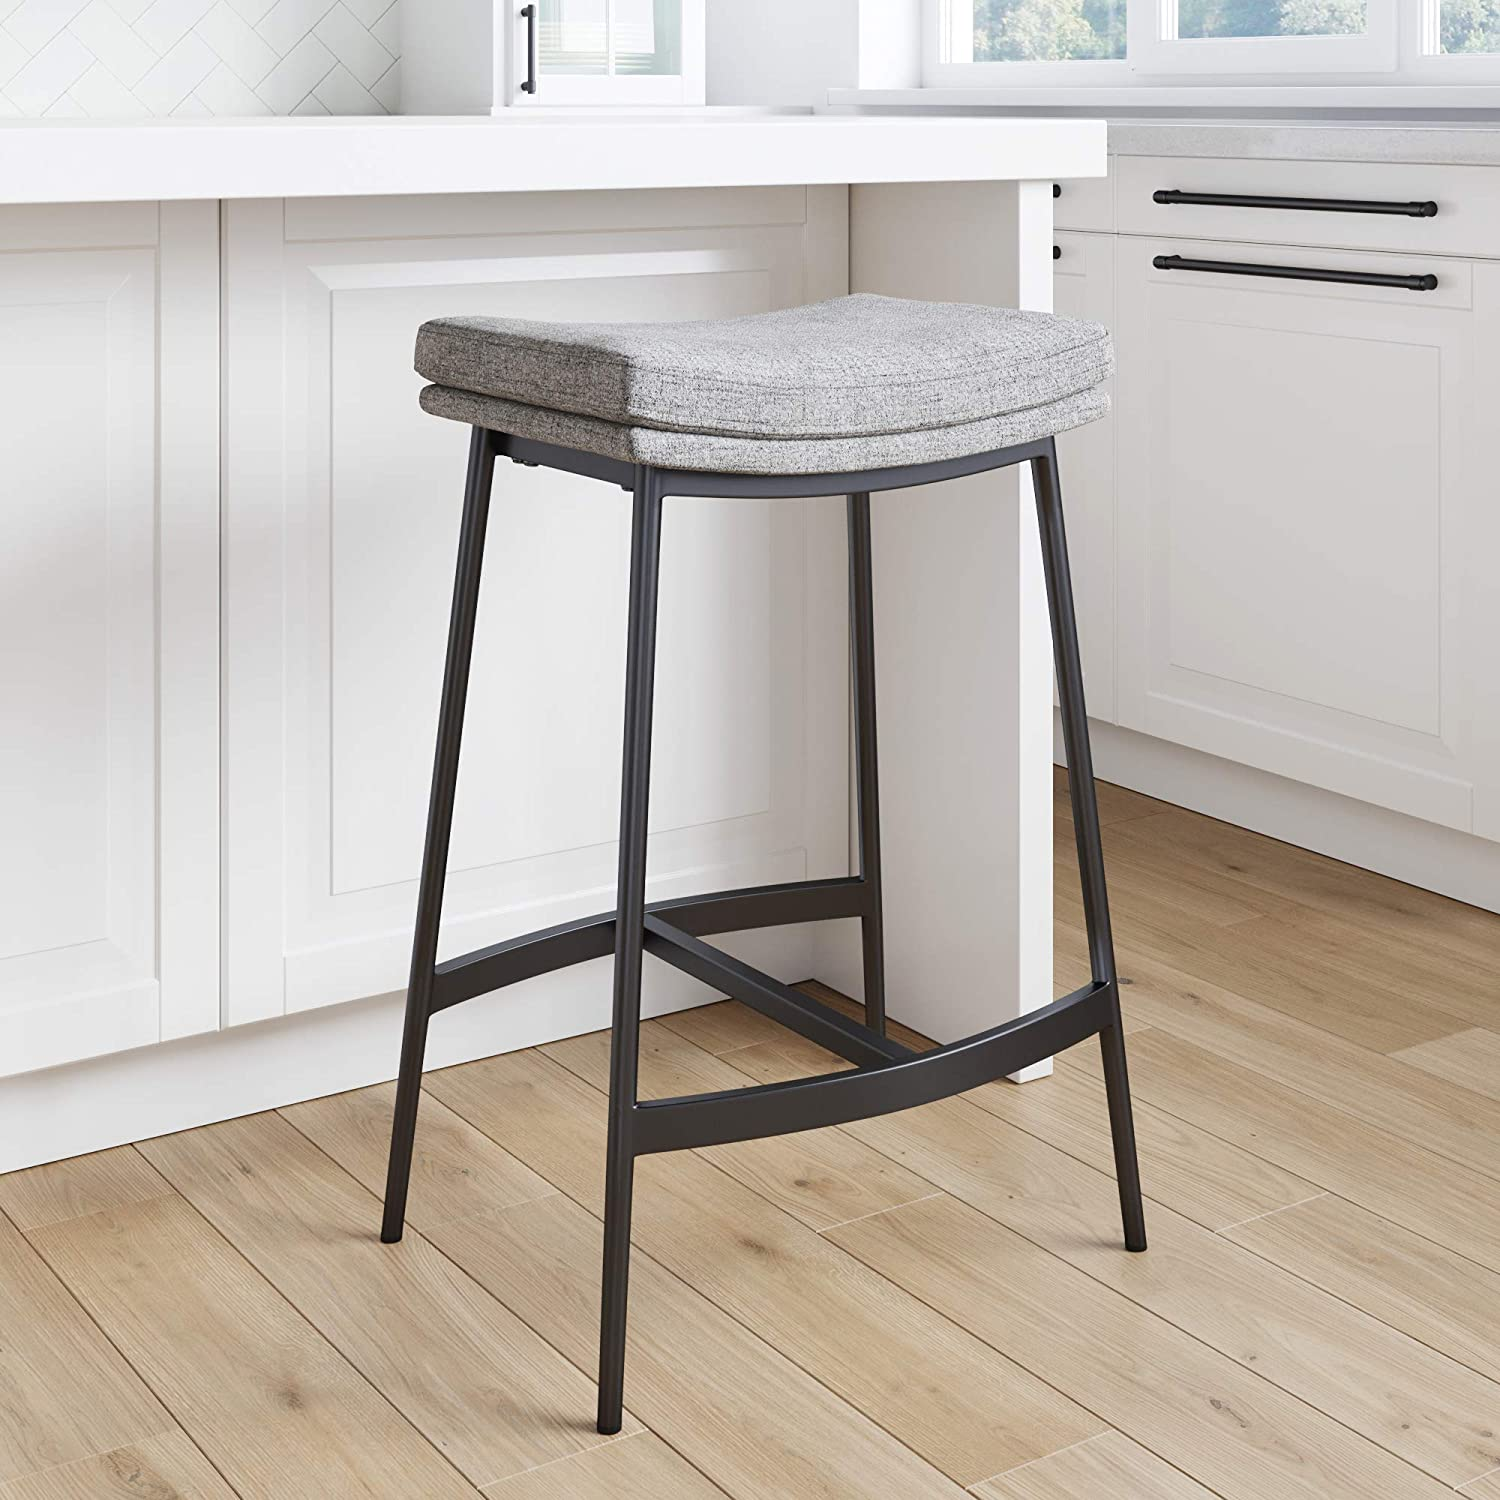 Nathan James 9 Arlo Modern Backless Upholstered Kitchen Counter Bar  Stool with Double Layered Saddle Seat and Metal Base, Grey/ Matte Black